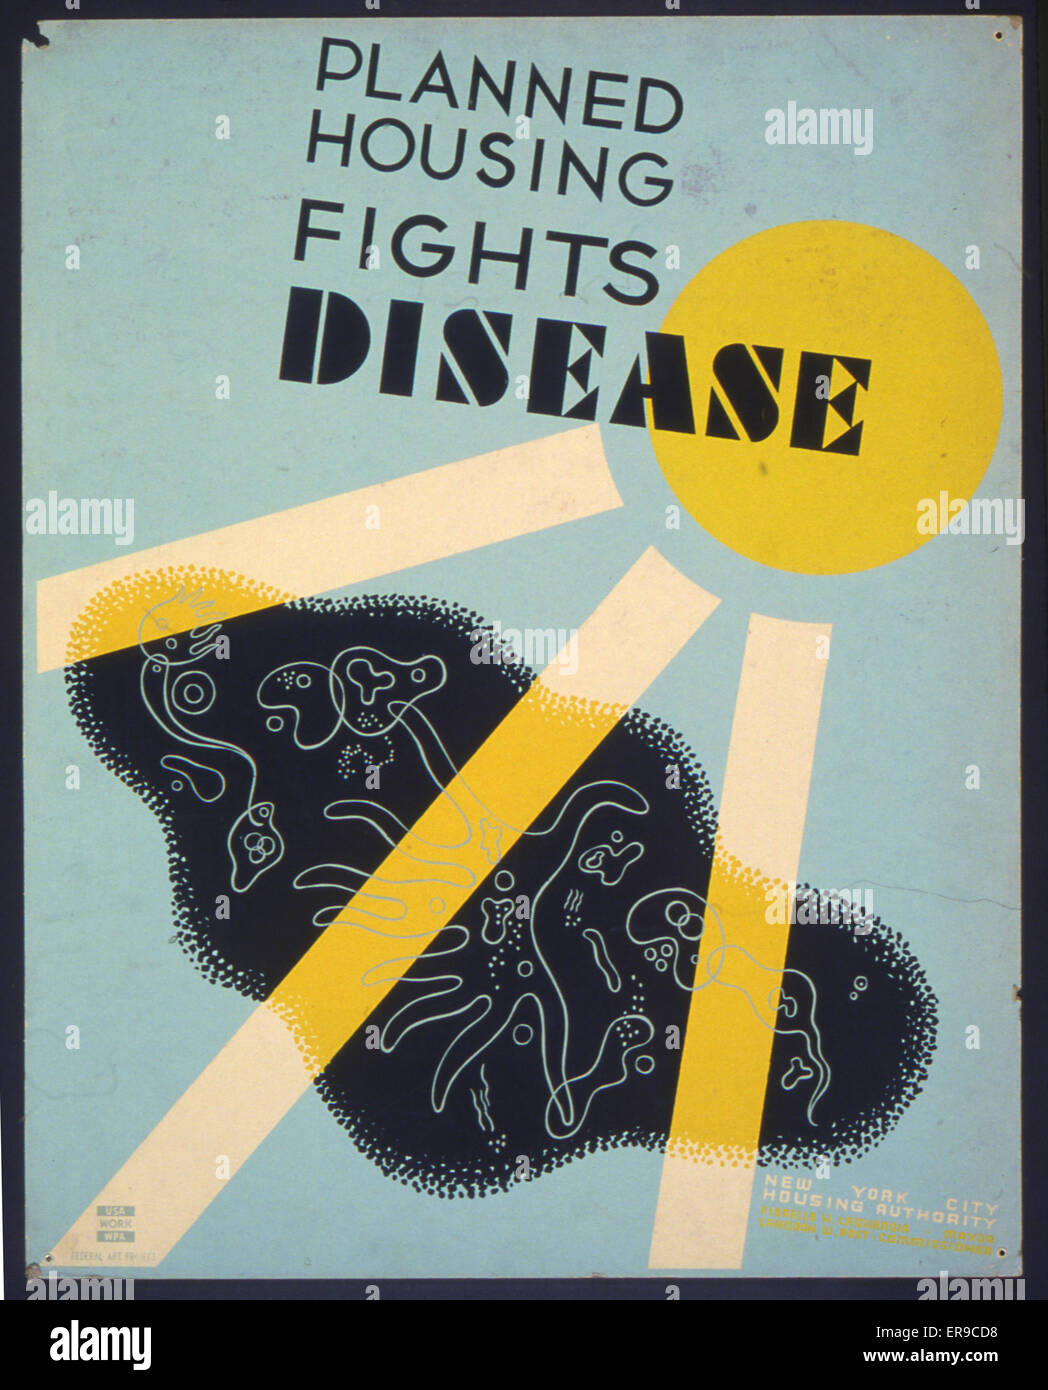 Planned housing fights disease. Poster promoting planned housing as a method to deter disease in cities, showing - Stock Image